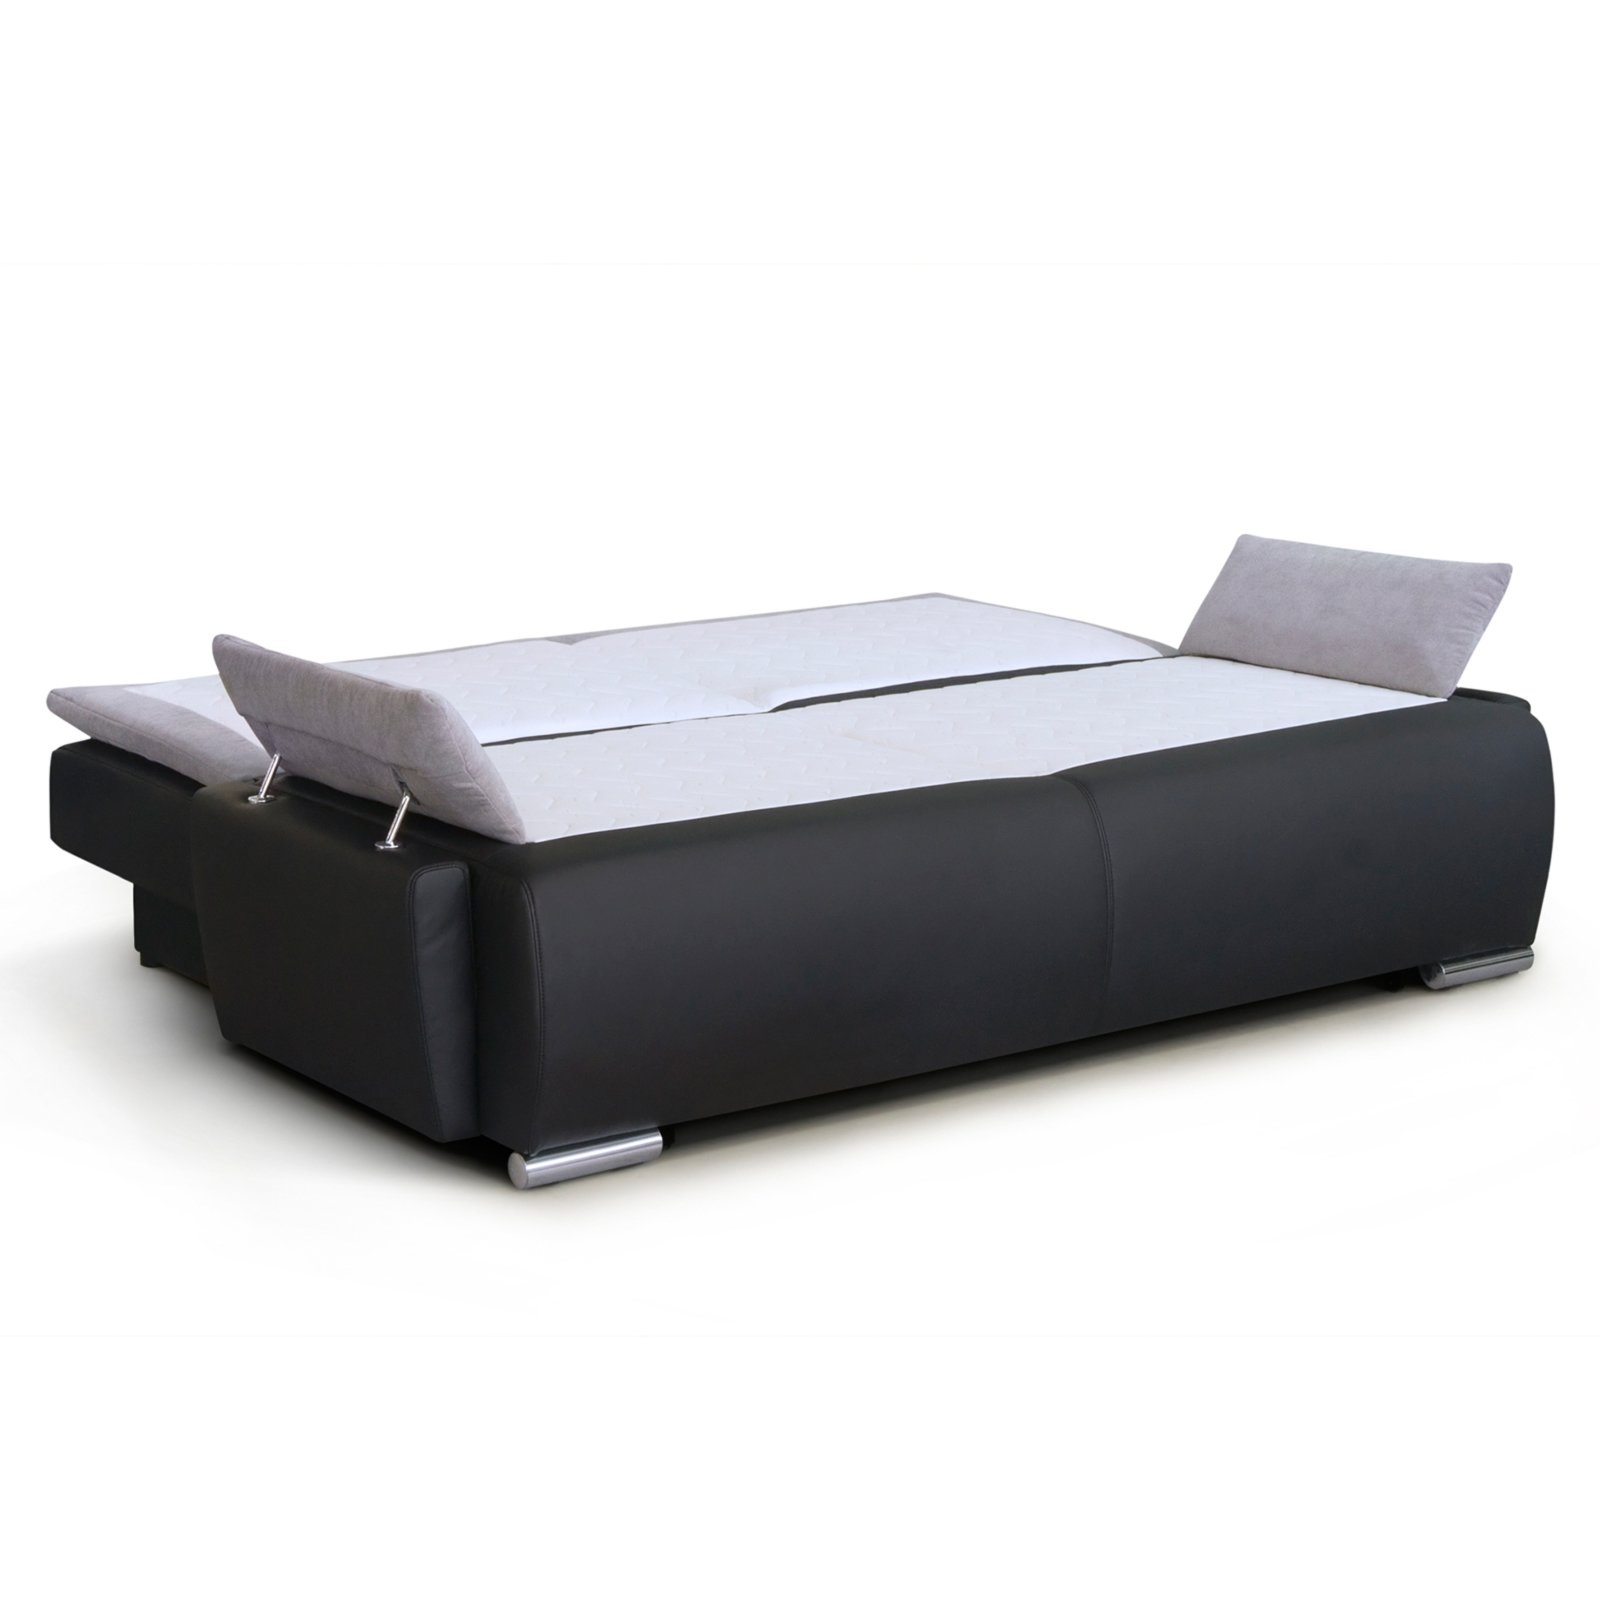 boxspringsofa schwarz grau dauerschl fer ebay. Black Bedroom Furniture Sets. Home Design Ideas